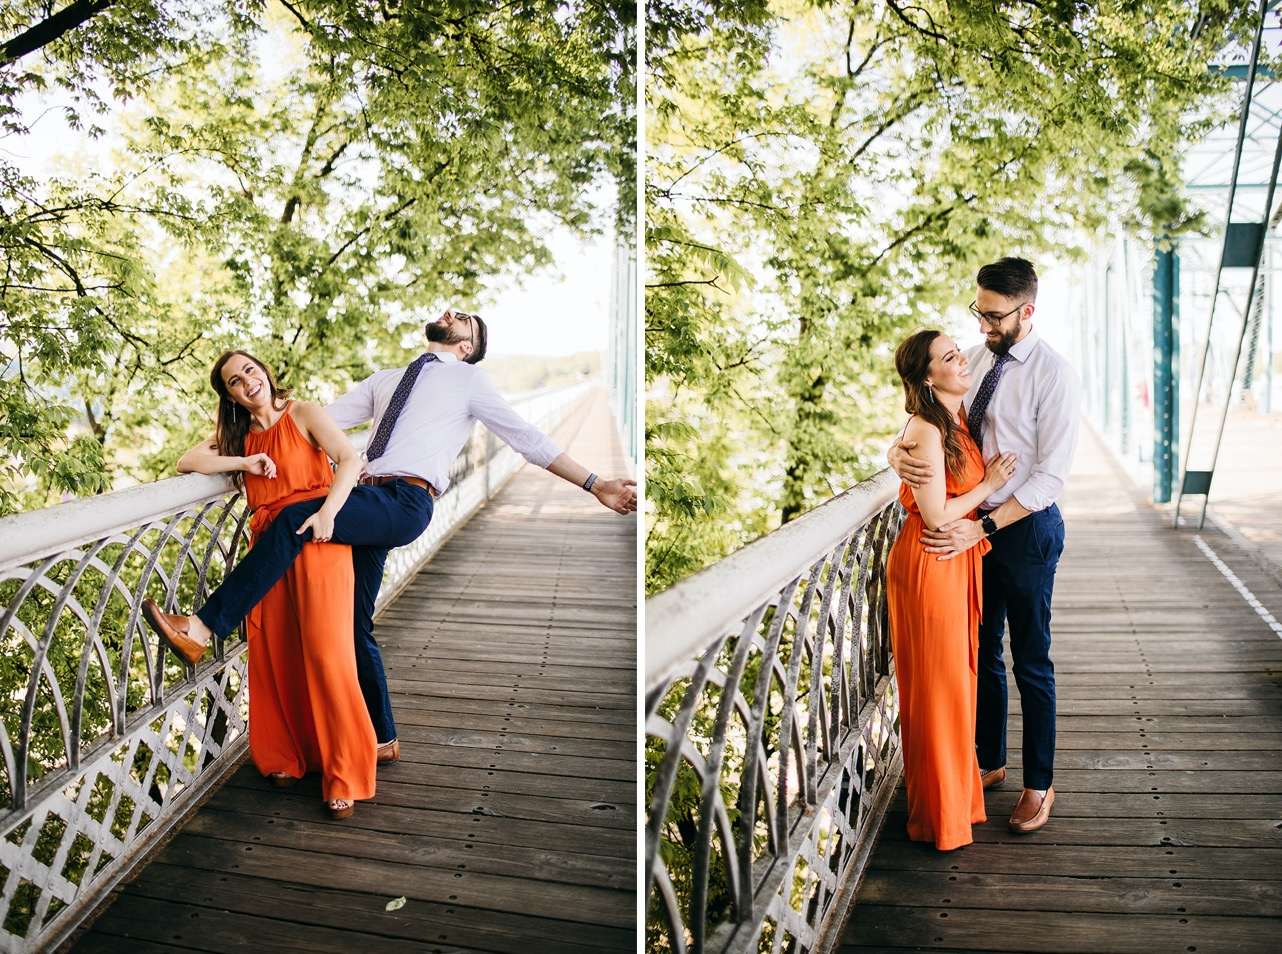 A couple embraces and laughs against the metal railing of the Walking Bridge in Chattanooga.